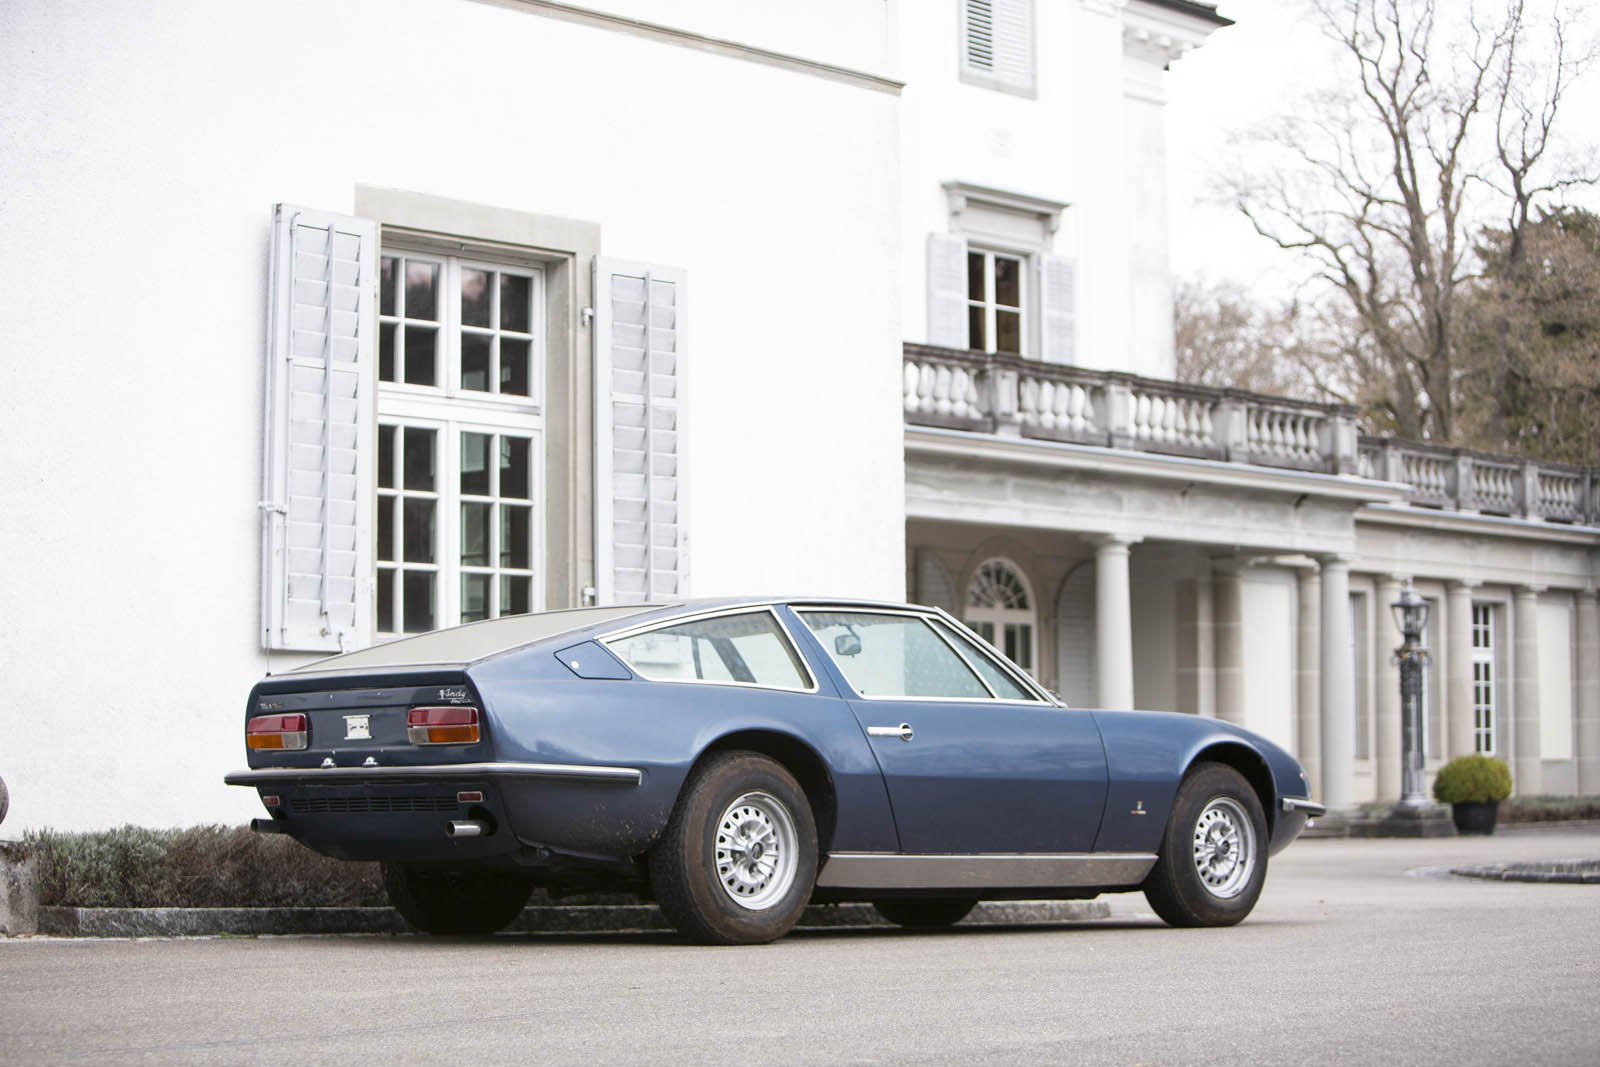 Swiss Castle cars in auctions (10)